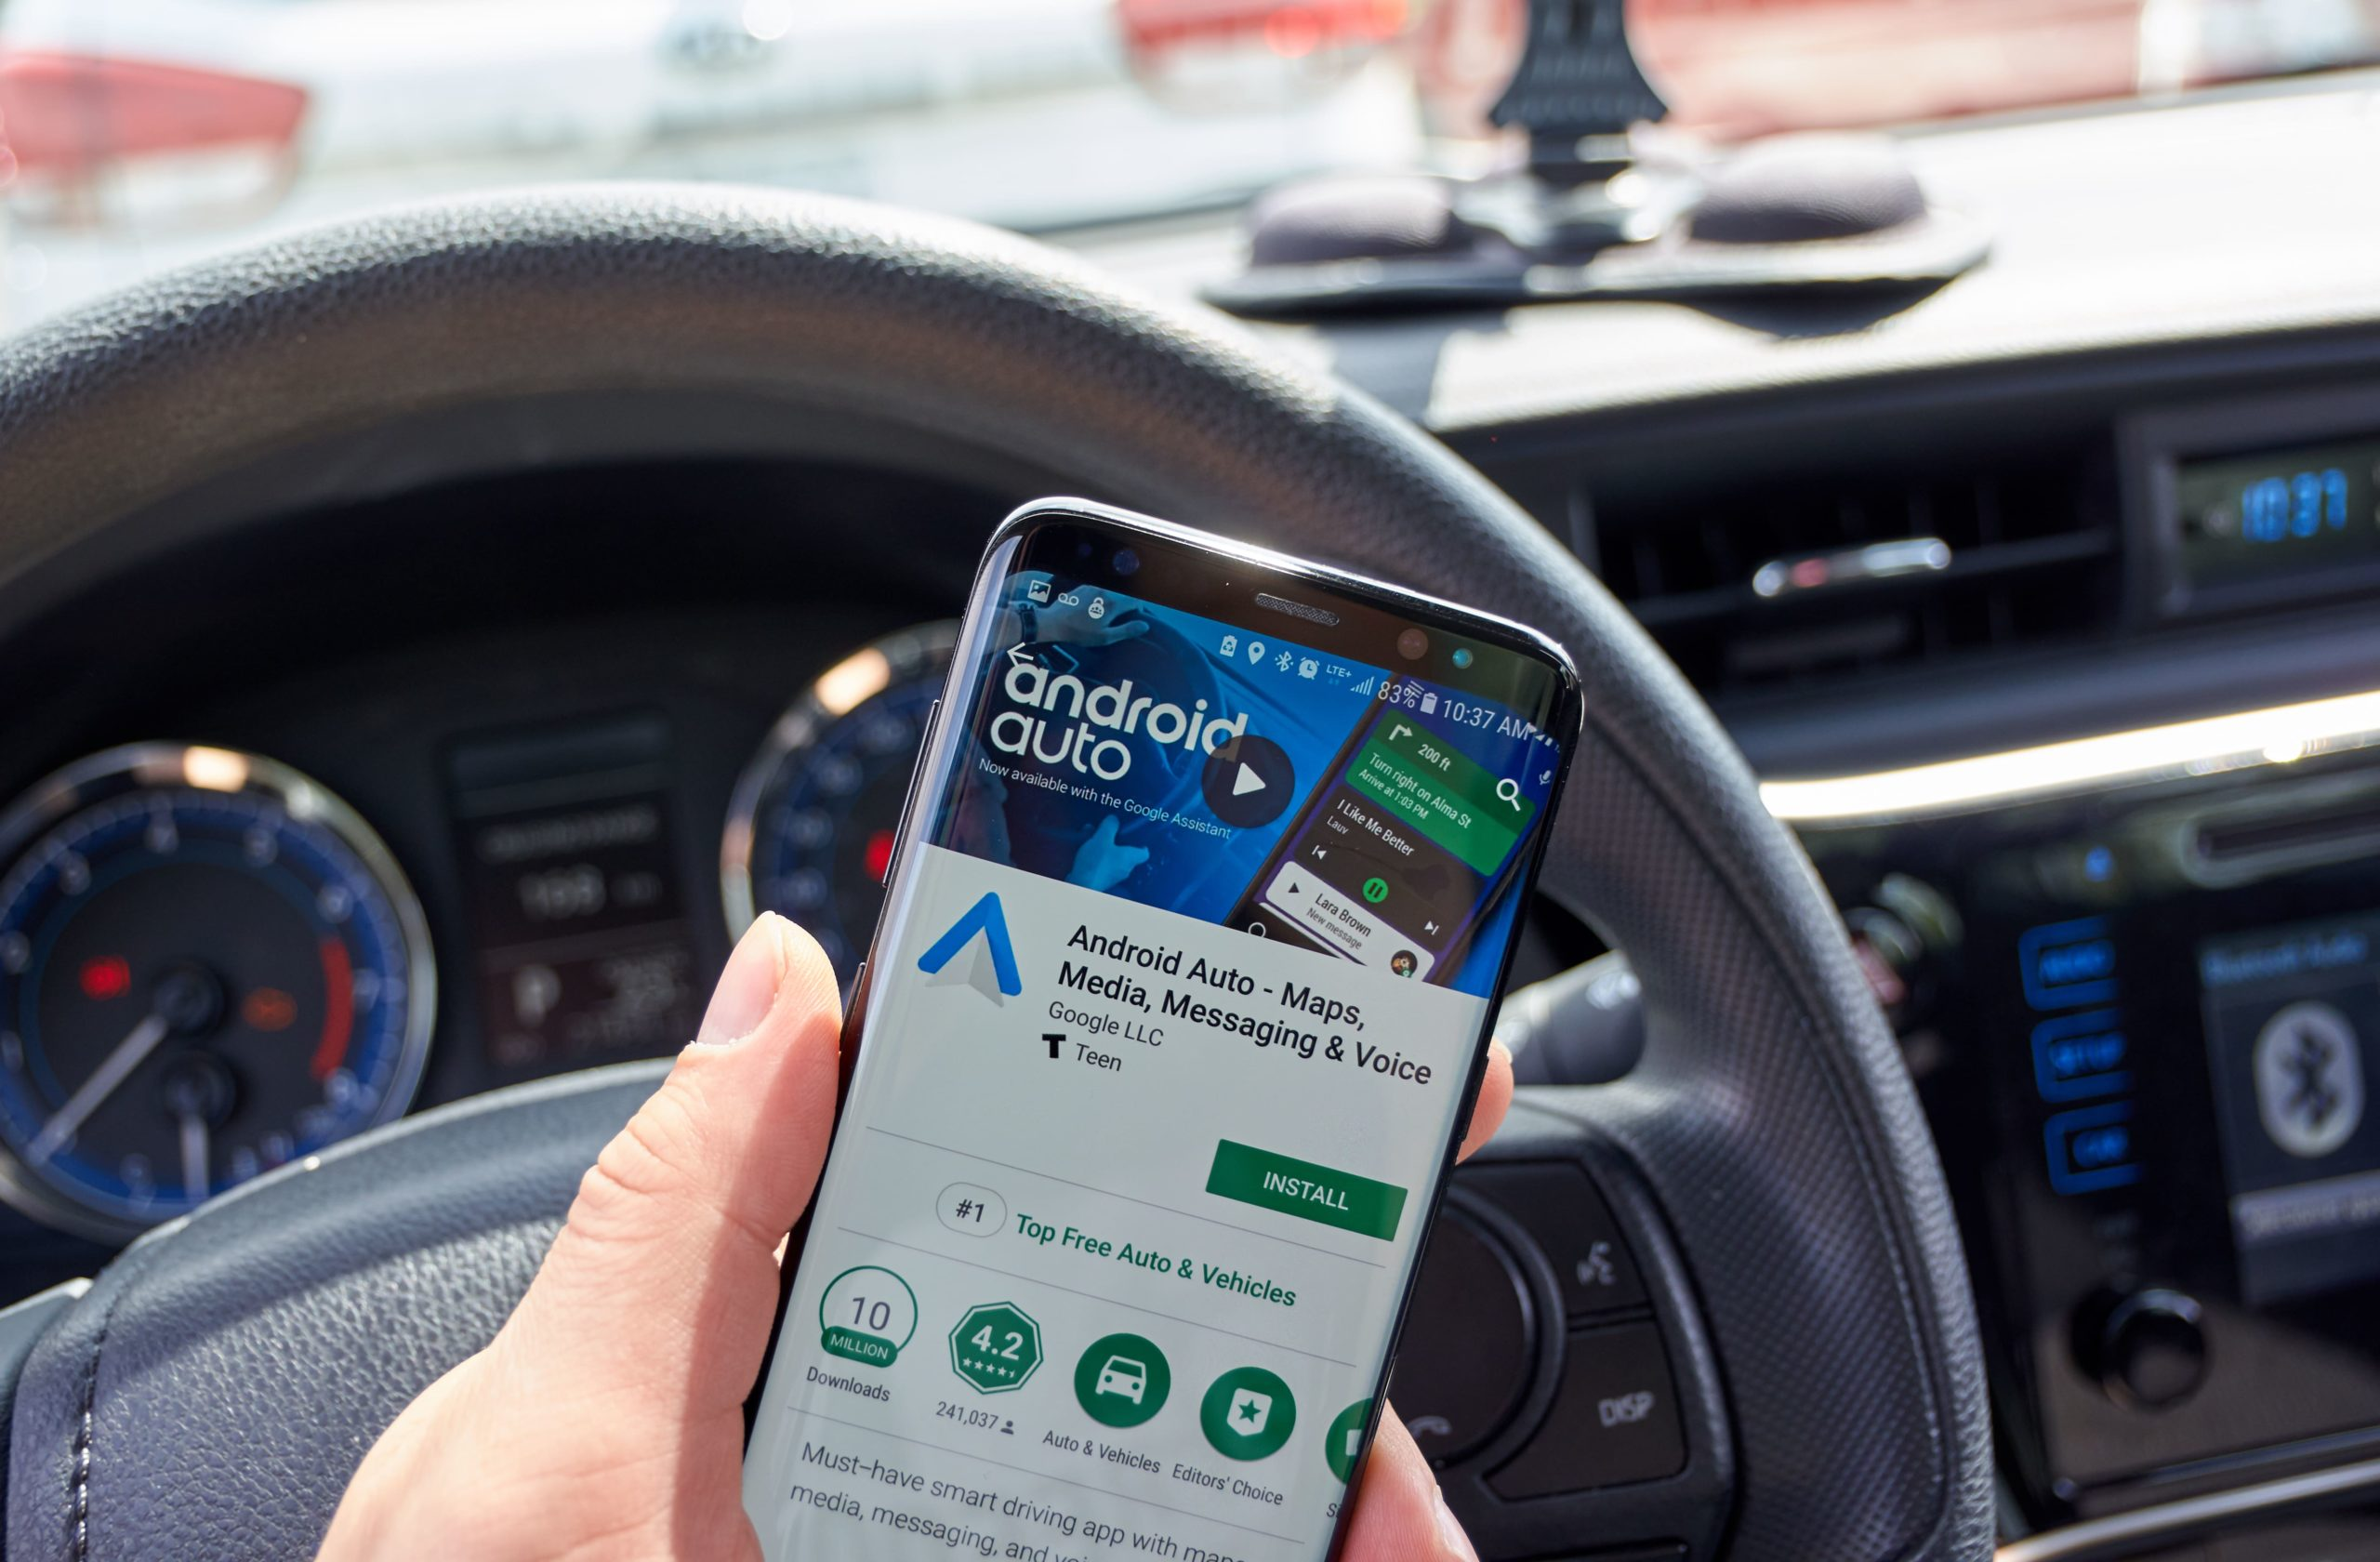 android auto being used with bluetooth to a car stereo